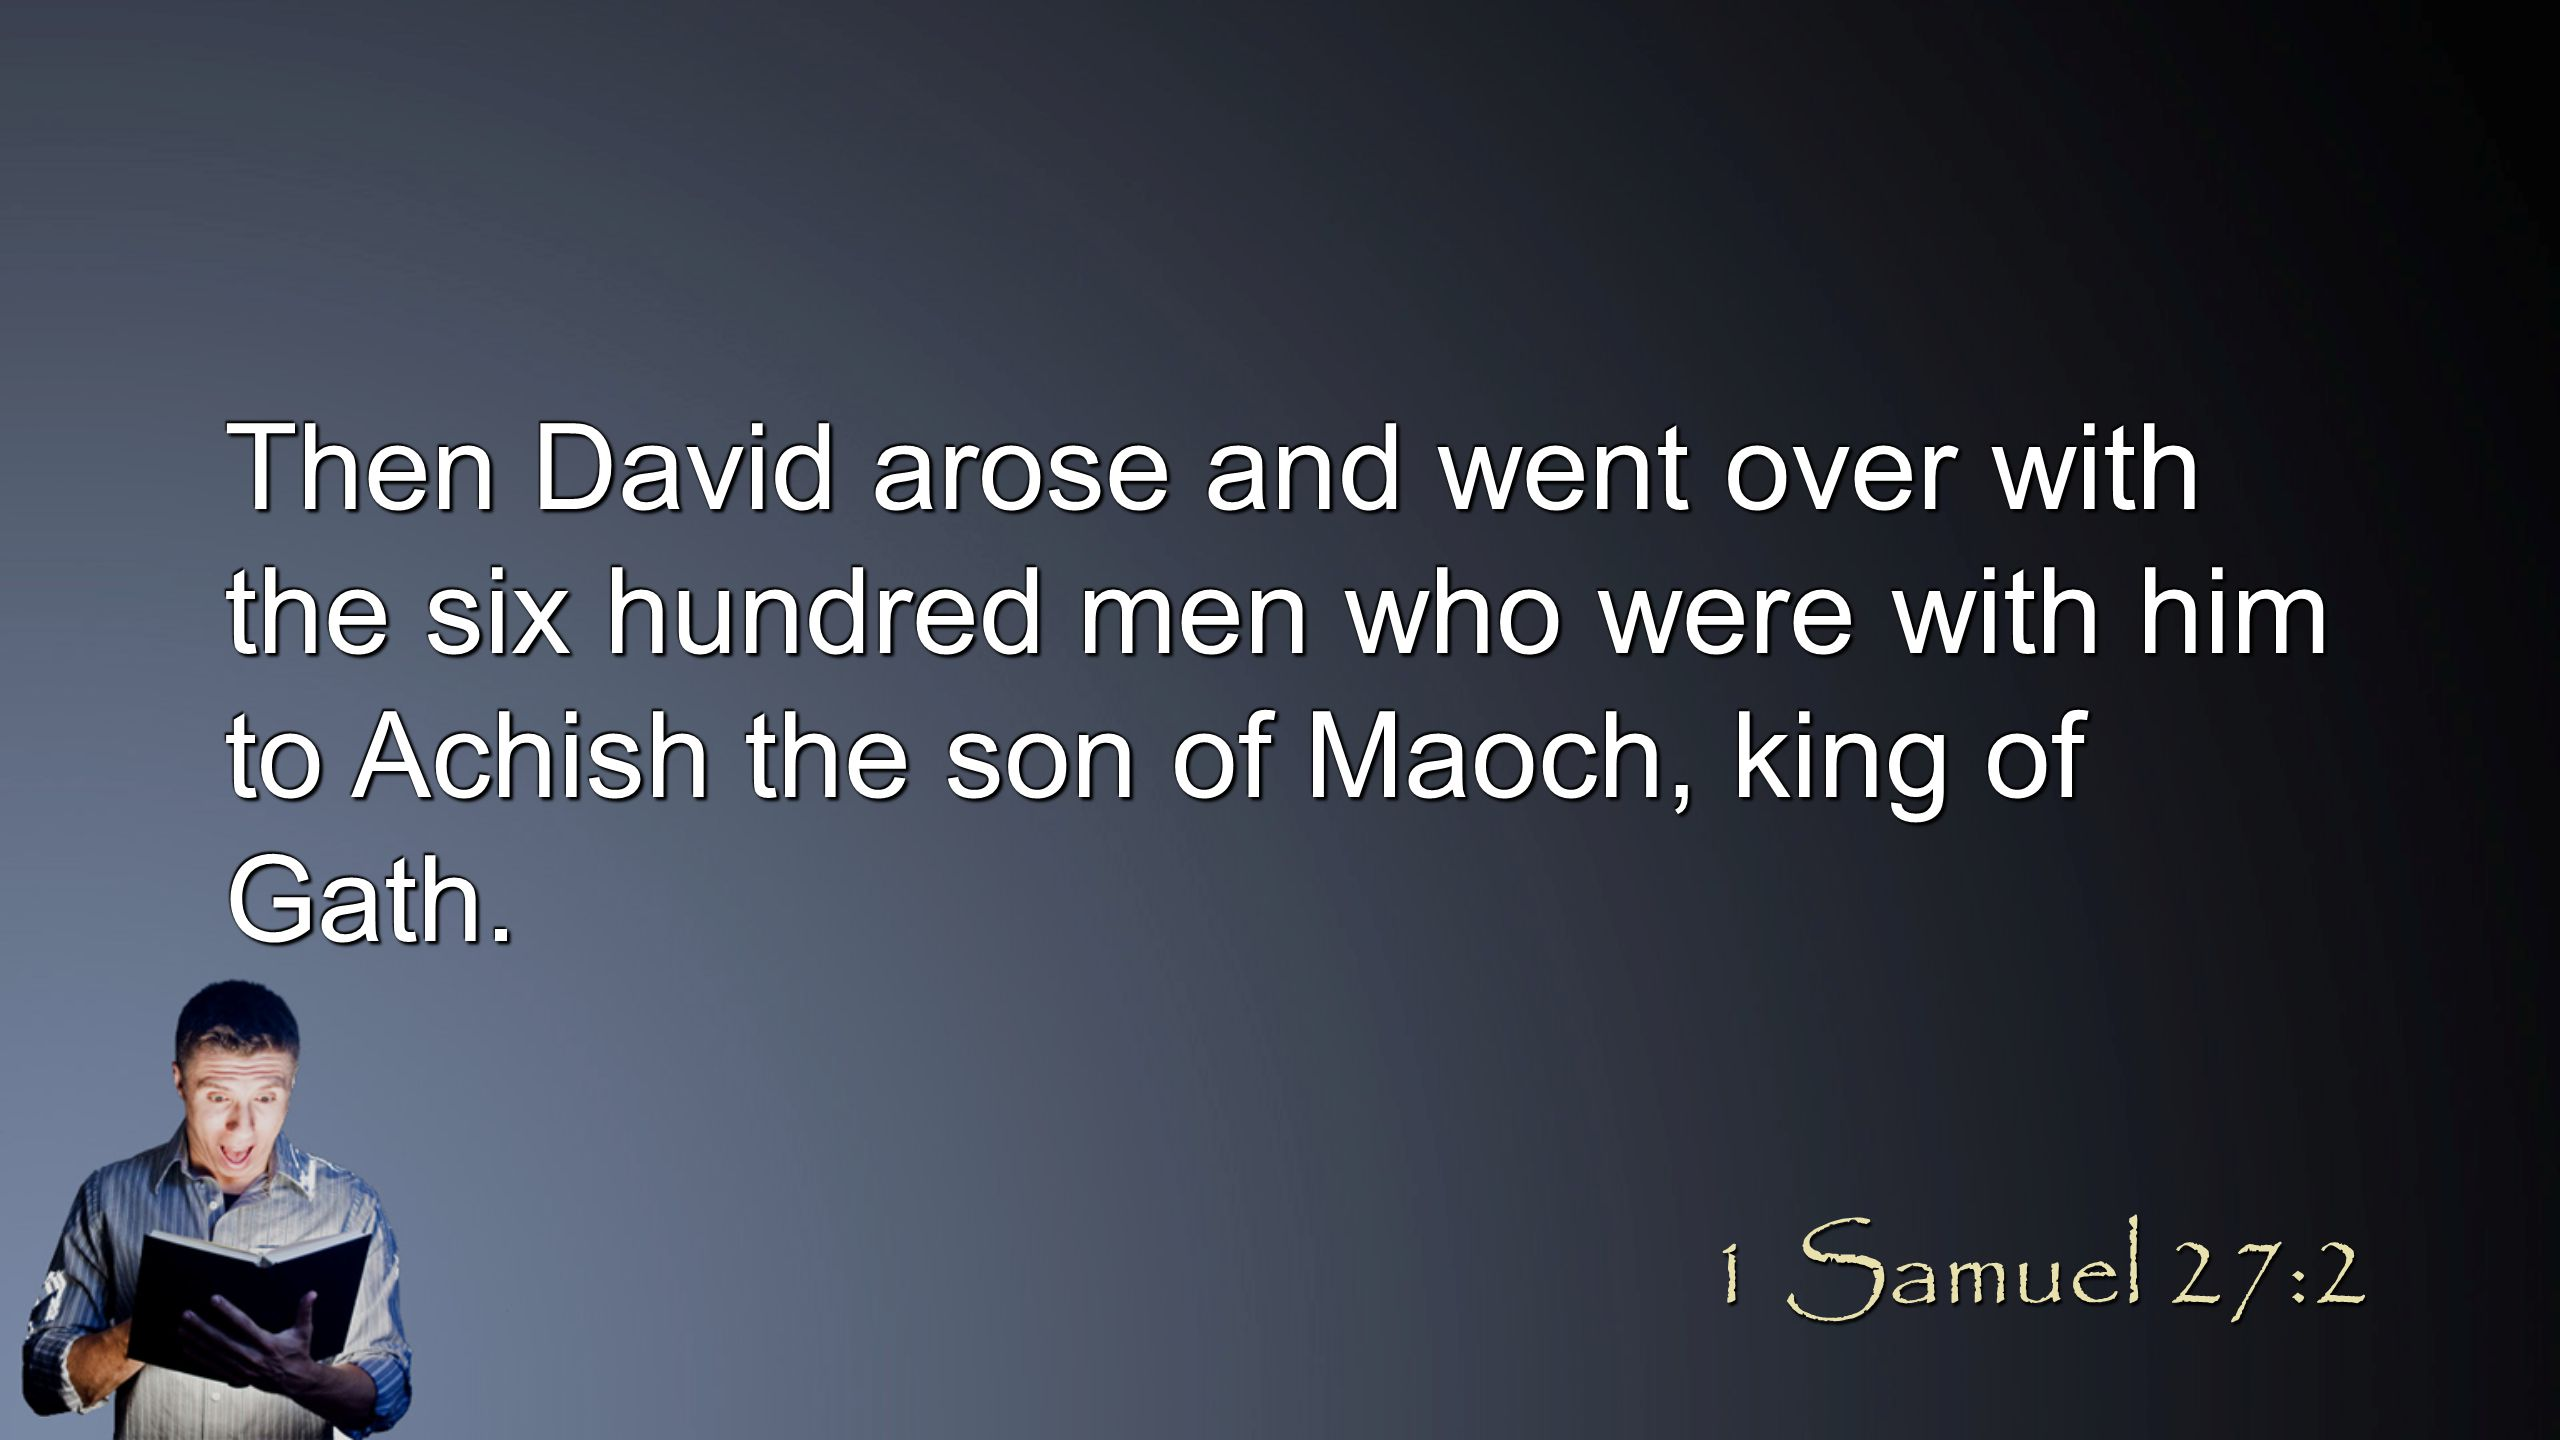 Then David arose and went over with the six hundred men who were with him to Achish the son of Maoch, king of Gath. 1 Samuel 27:2